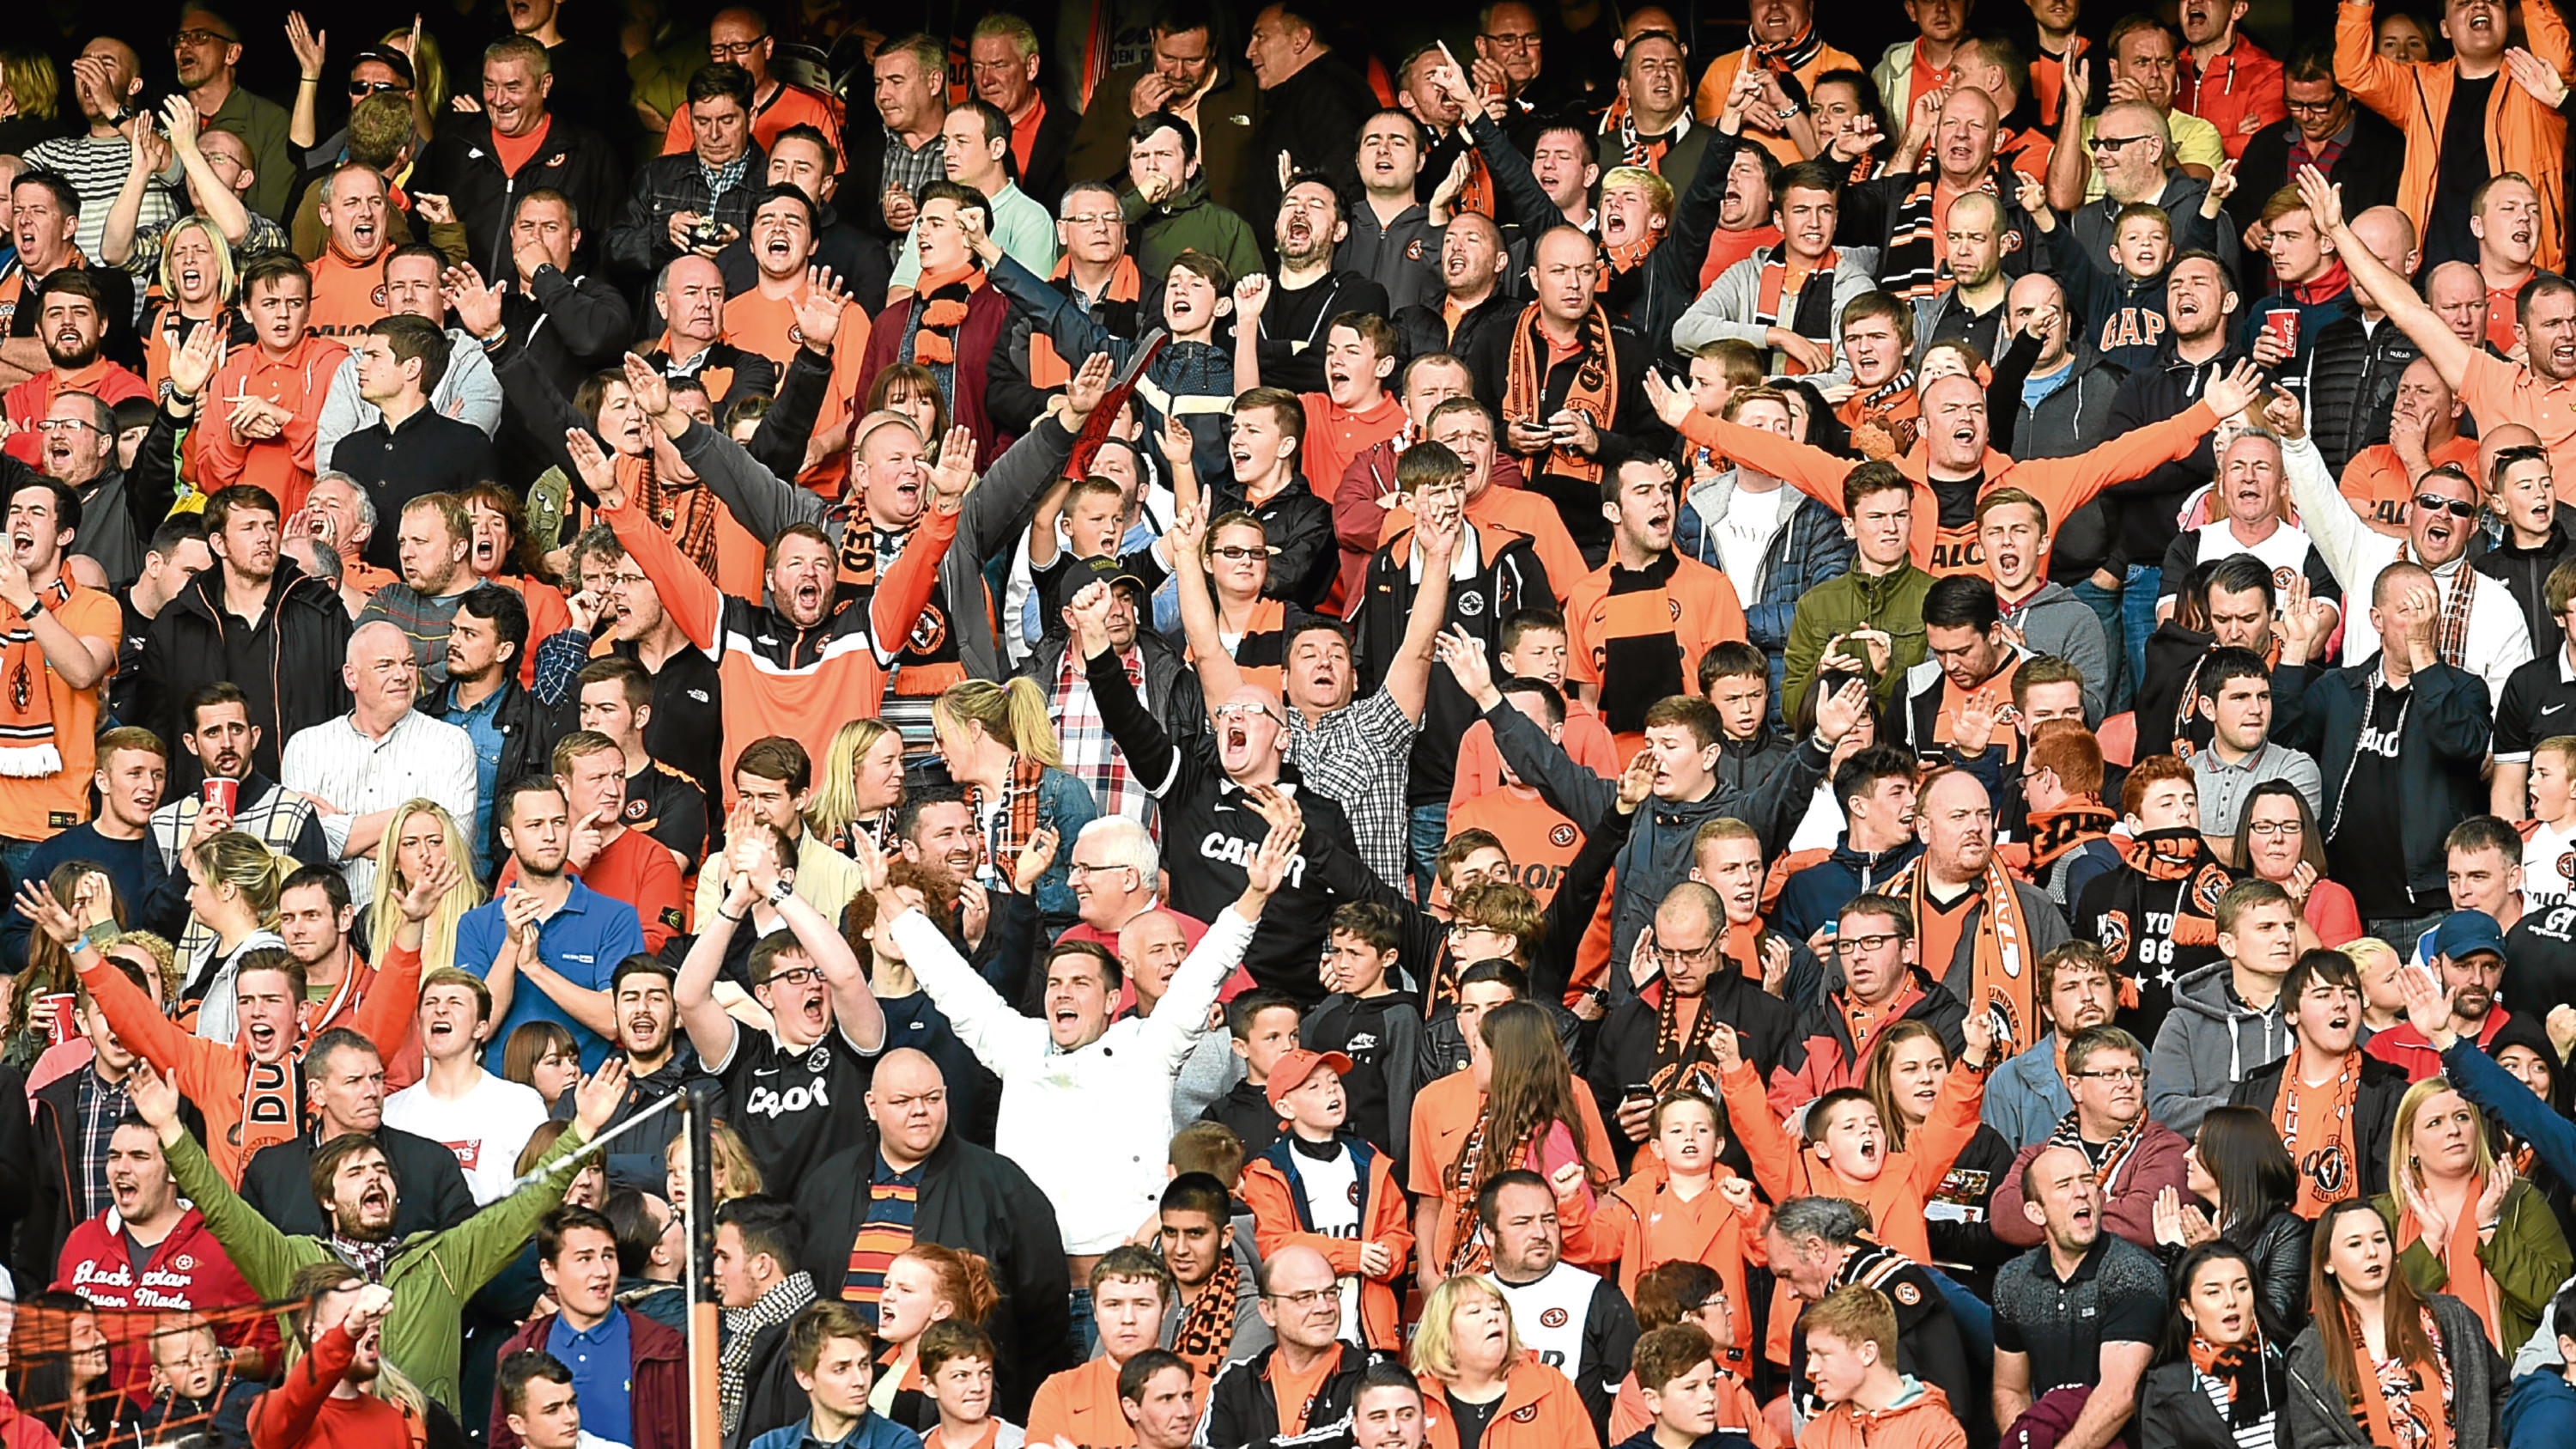 10,000 fans are expected to descend on Tannadice for the March 10 match.